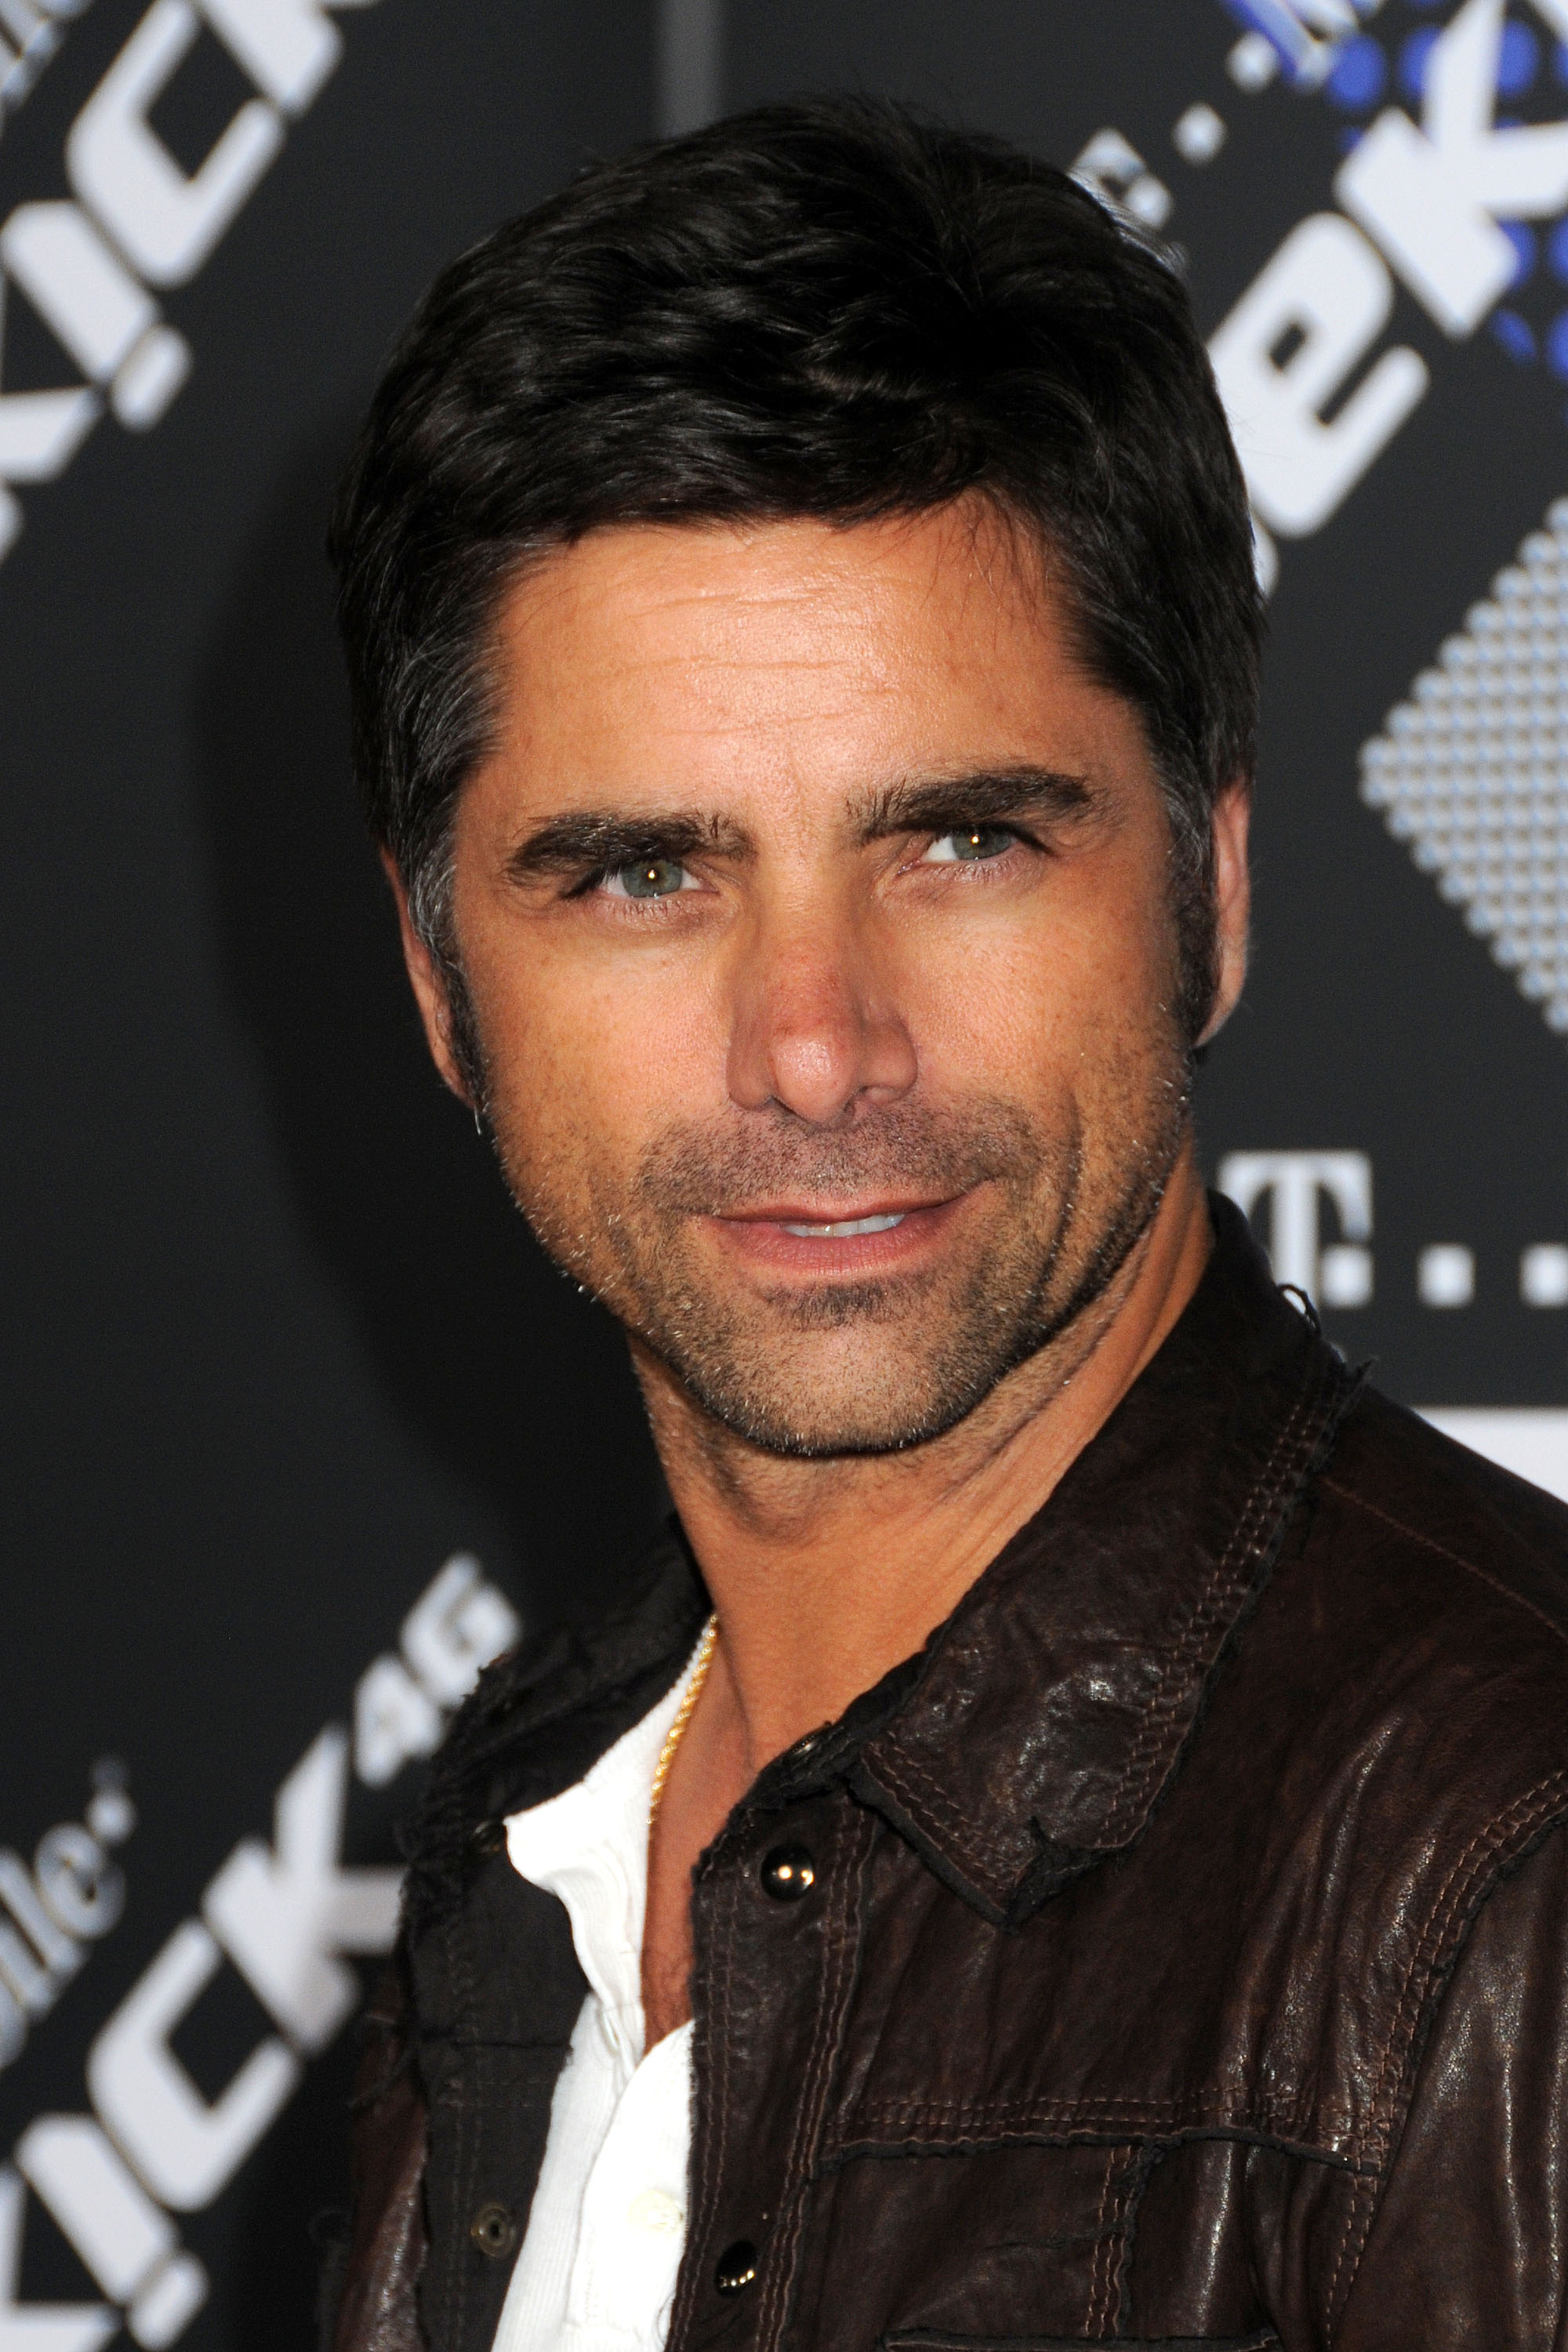 John stamos who is he dating 2012 8